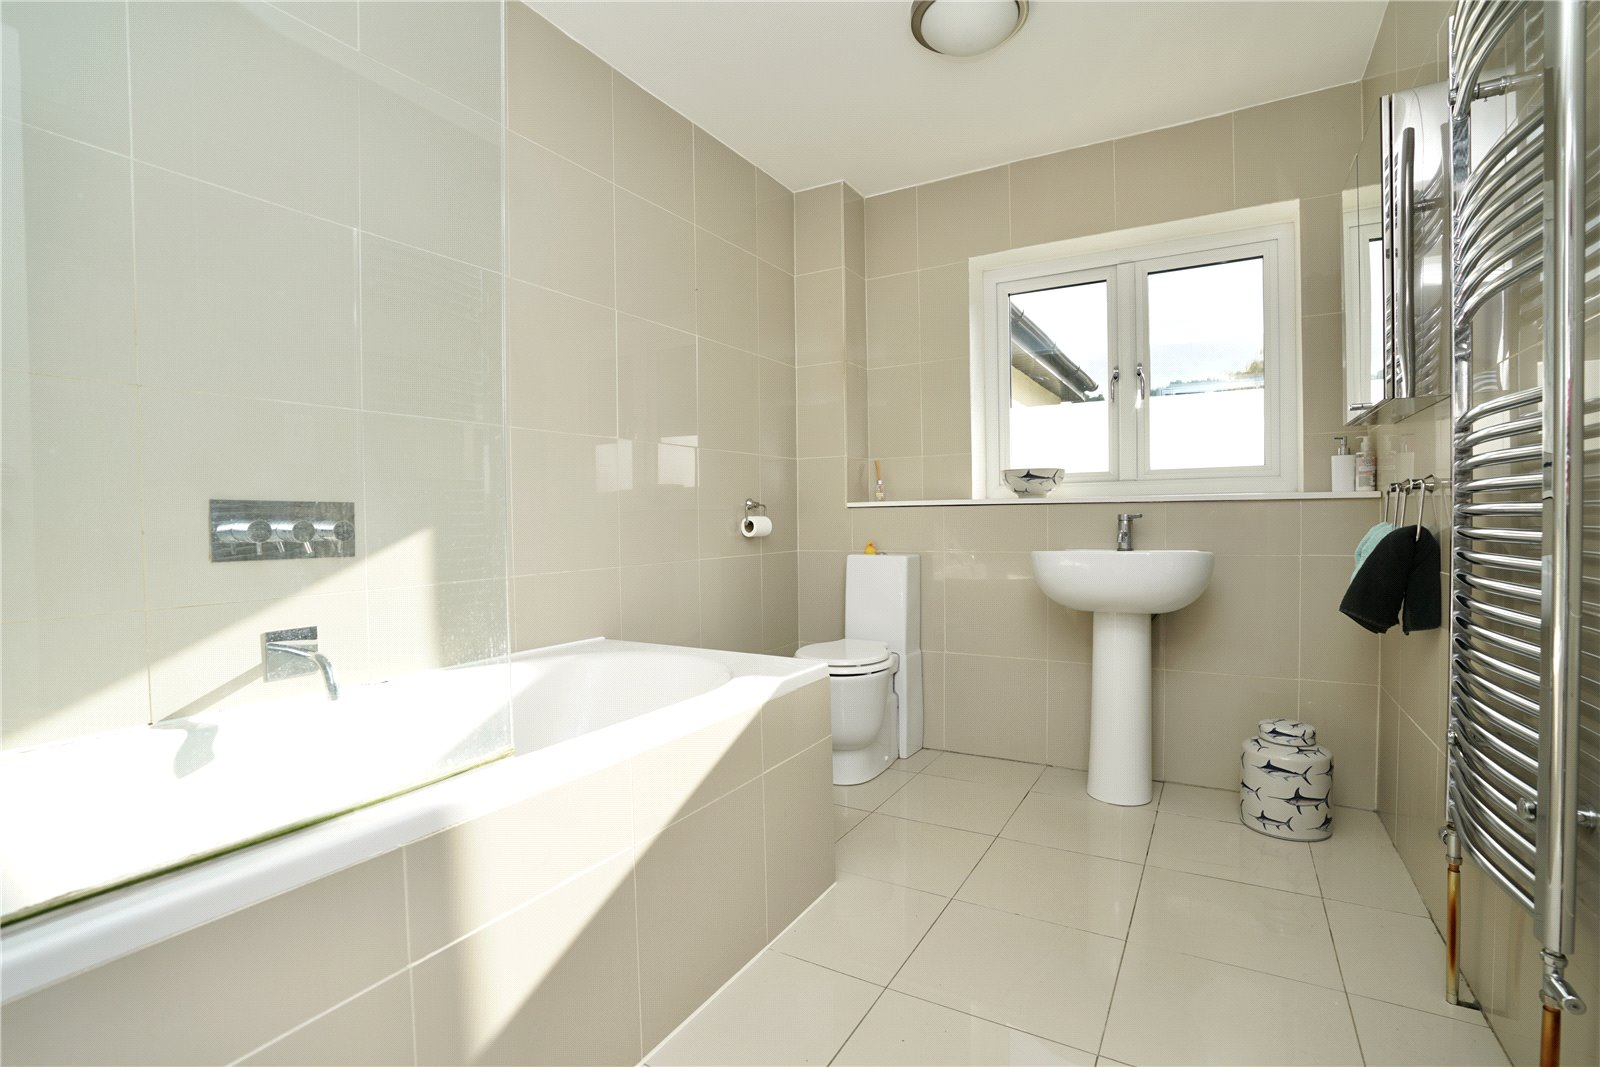 4 bed house for sale in Eaton Socon  - Property Image 11